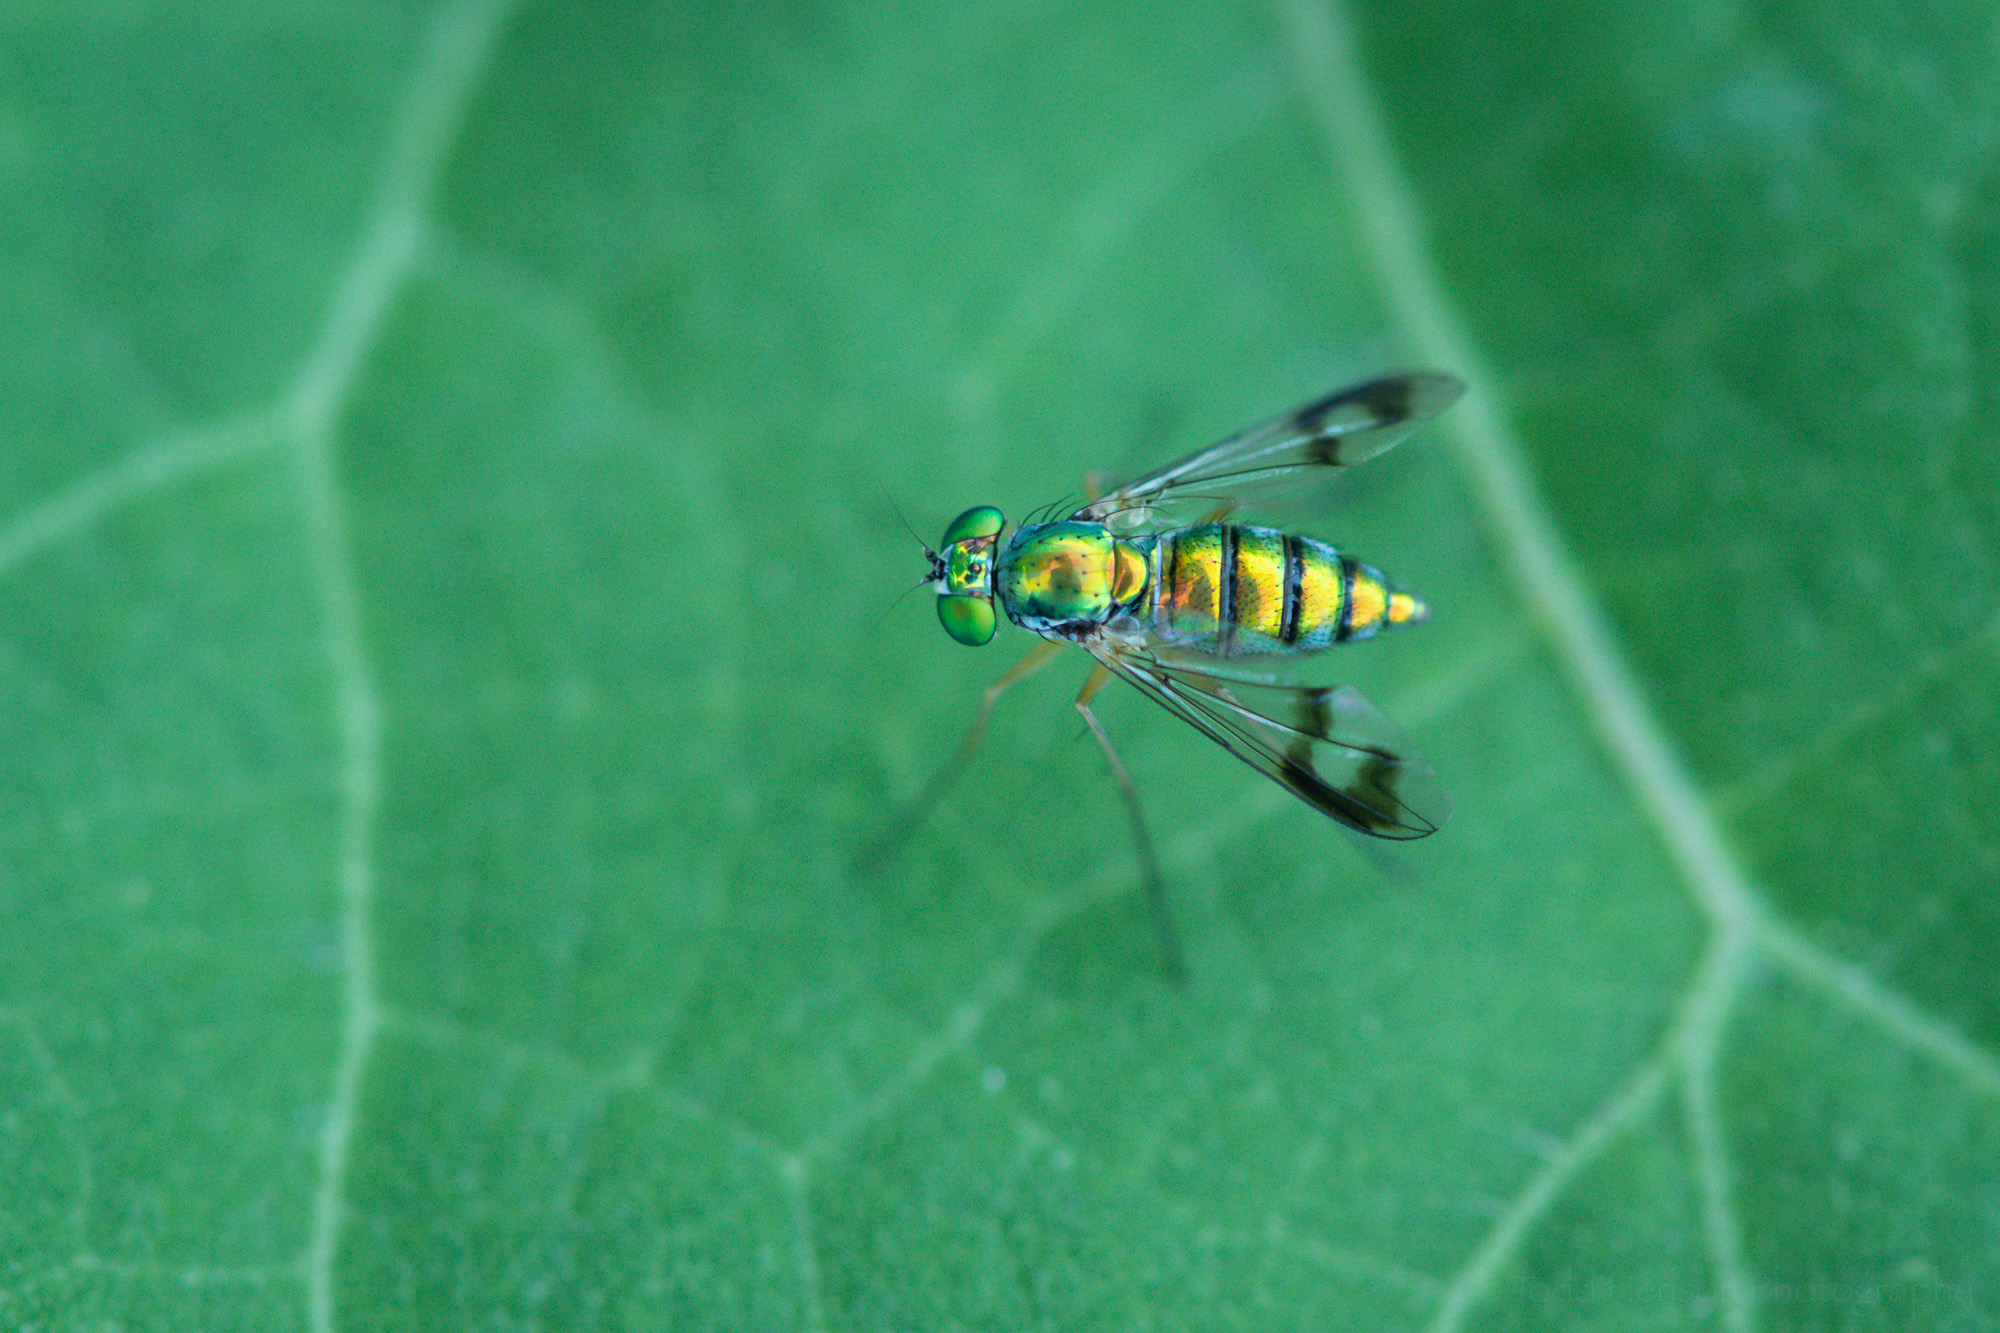 Top down view of an iridescent, metallic looking Long-legged Fly.